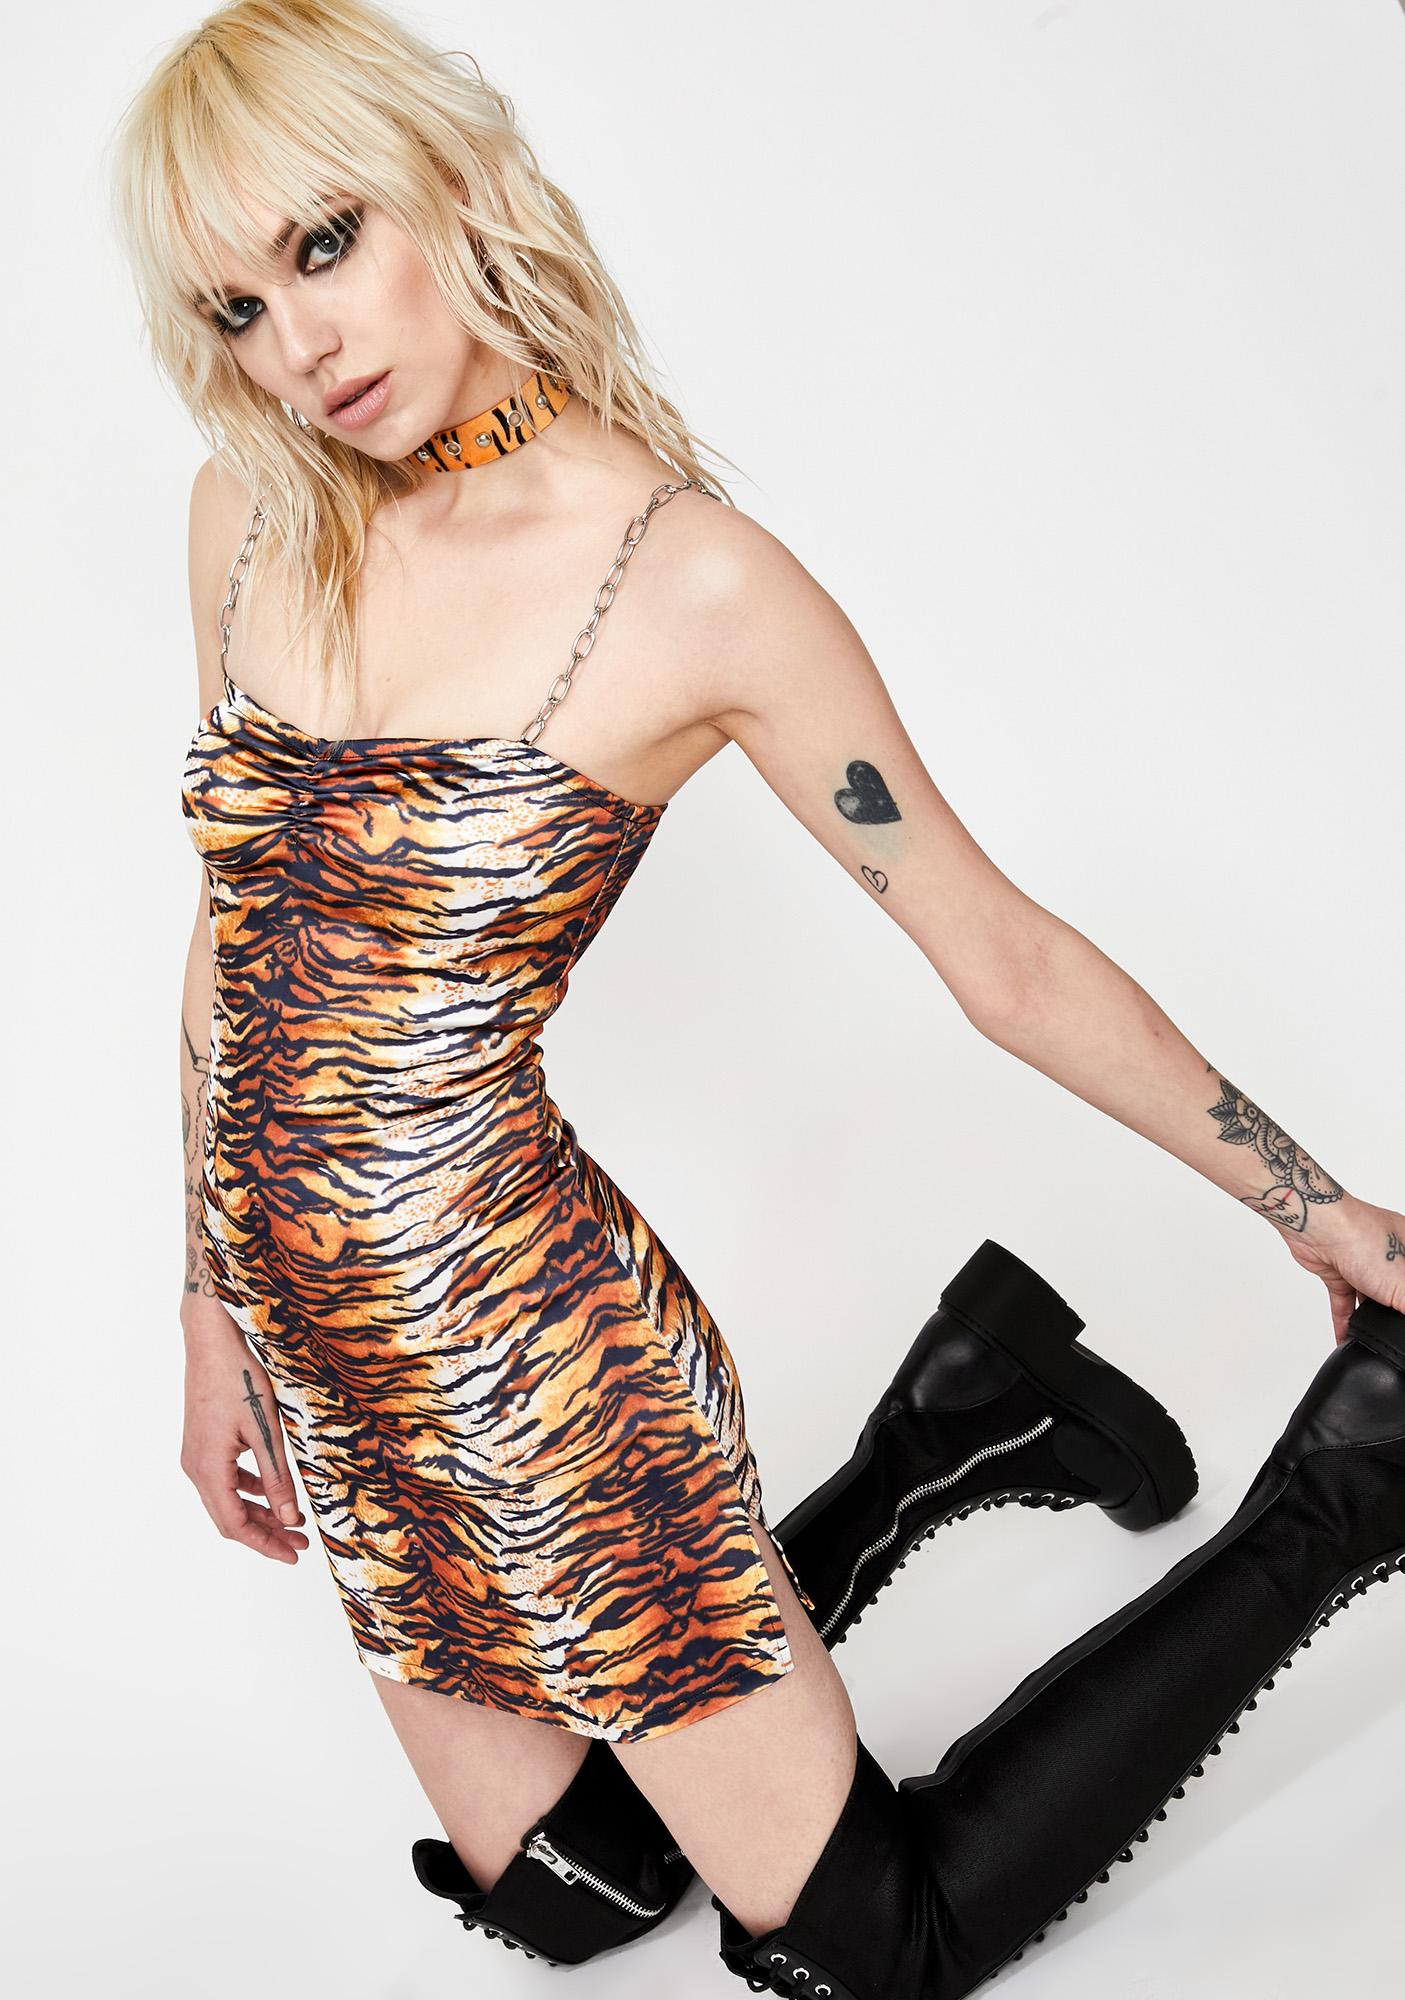 HOROSCOPEZ Lethal Weapon Tiger Dress